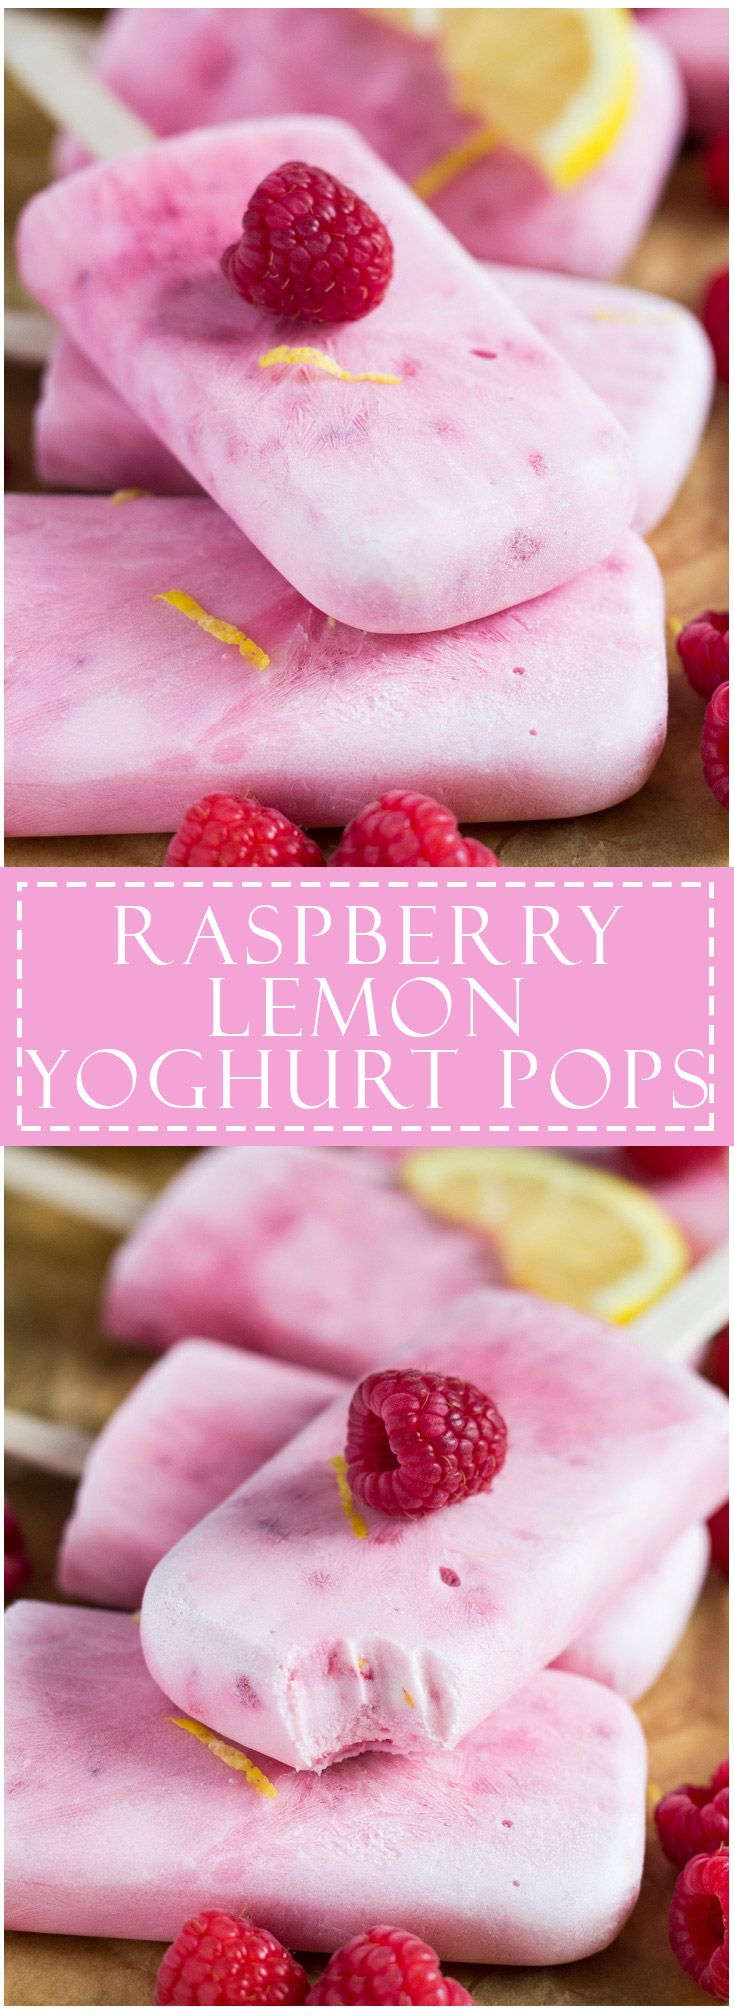 Raspberry Lemon Greek Yoghurt Popsicles | marshasbakingaddiction.com…